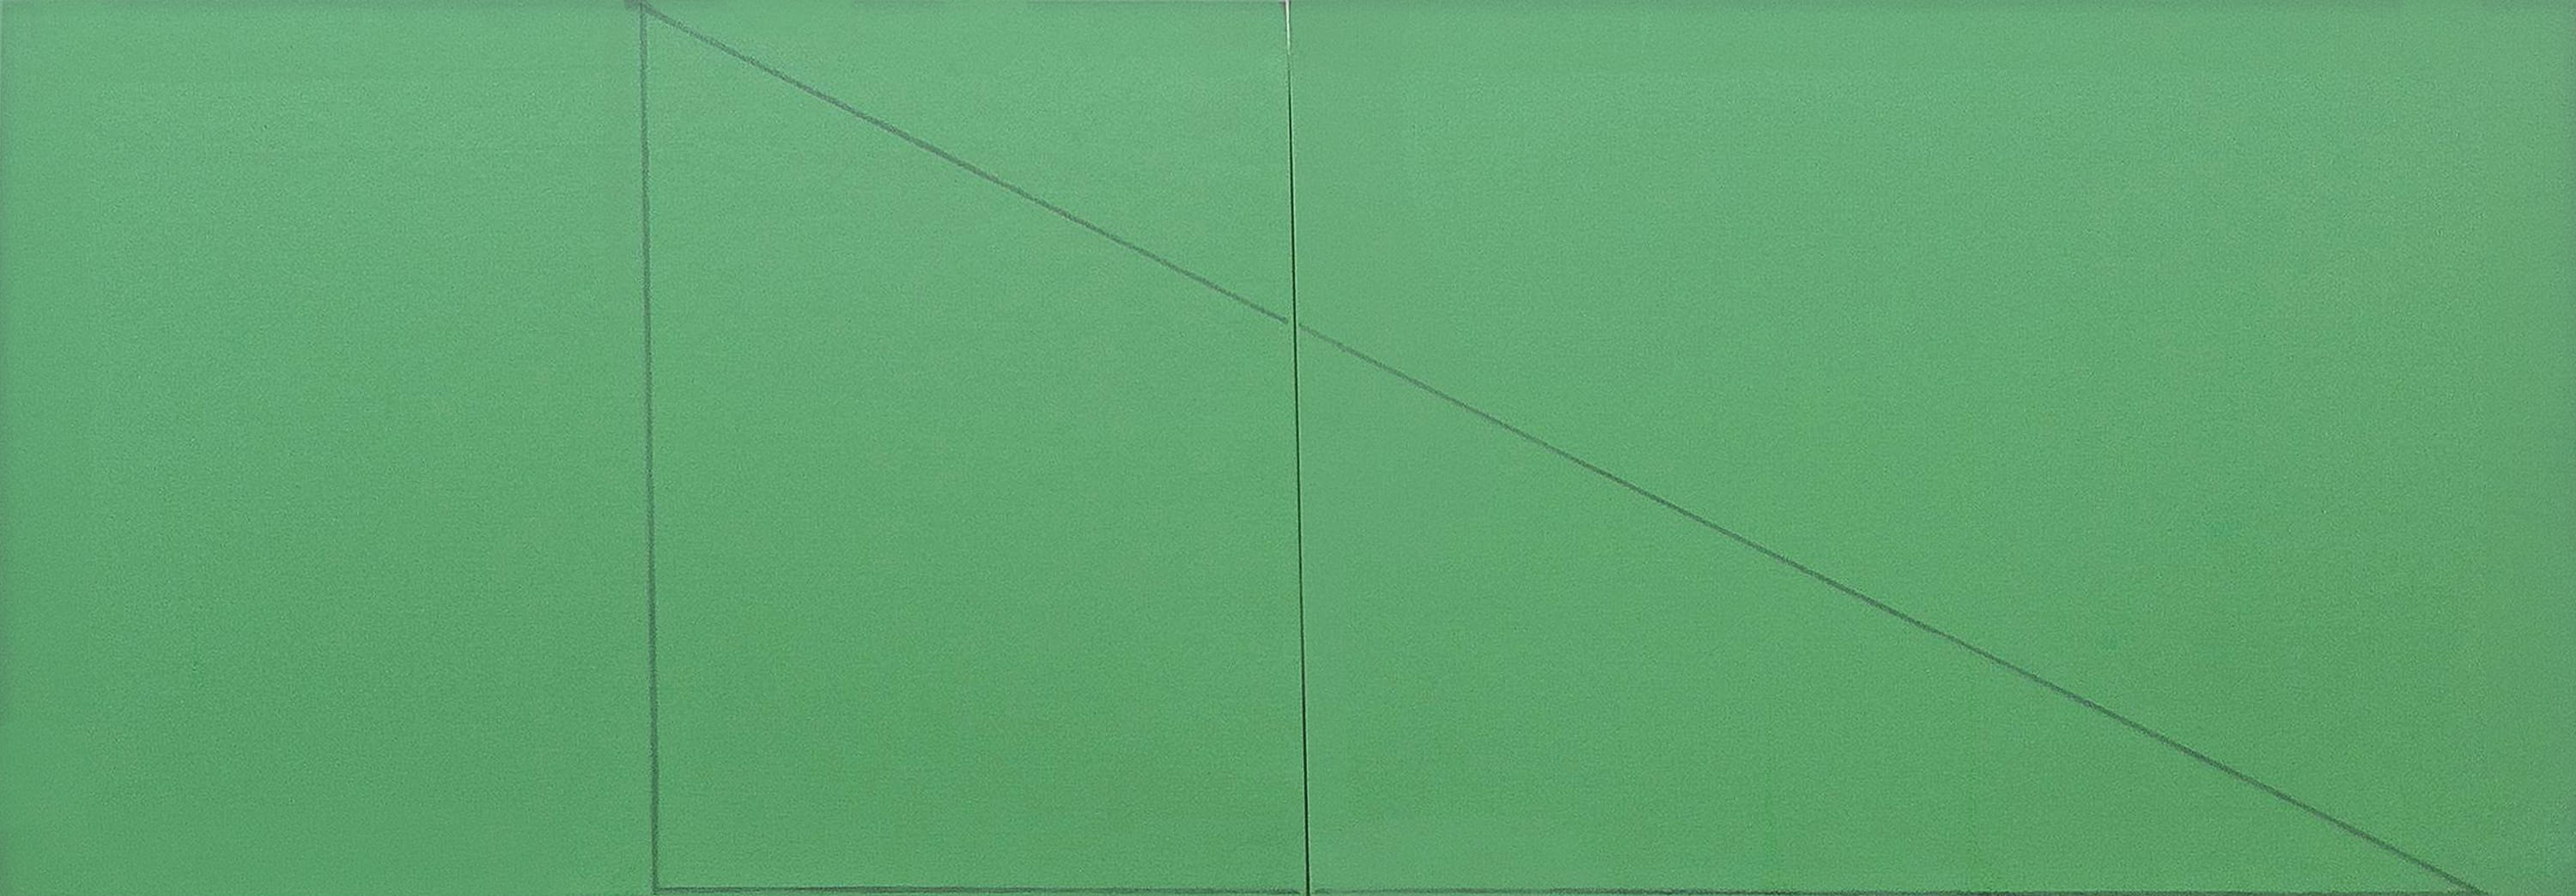 A Triangle Within Two Rectangles Green